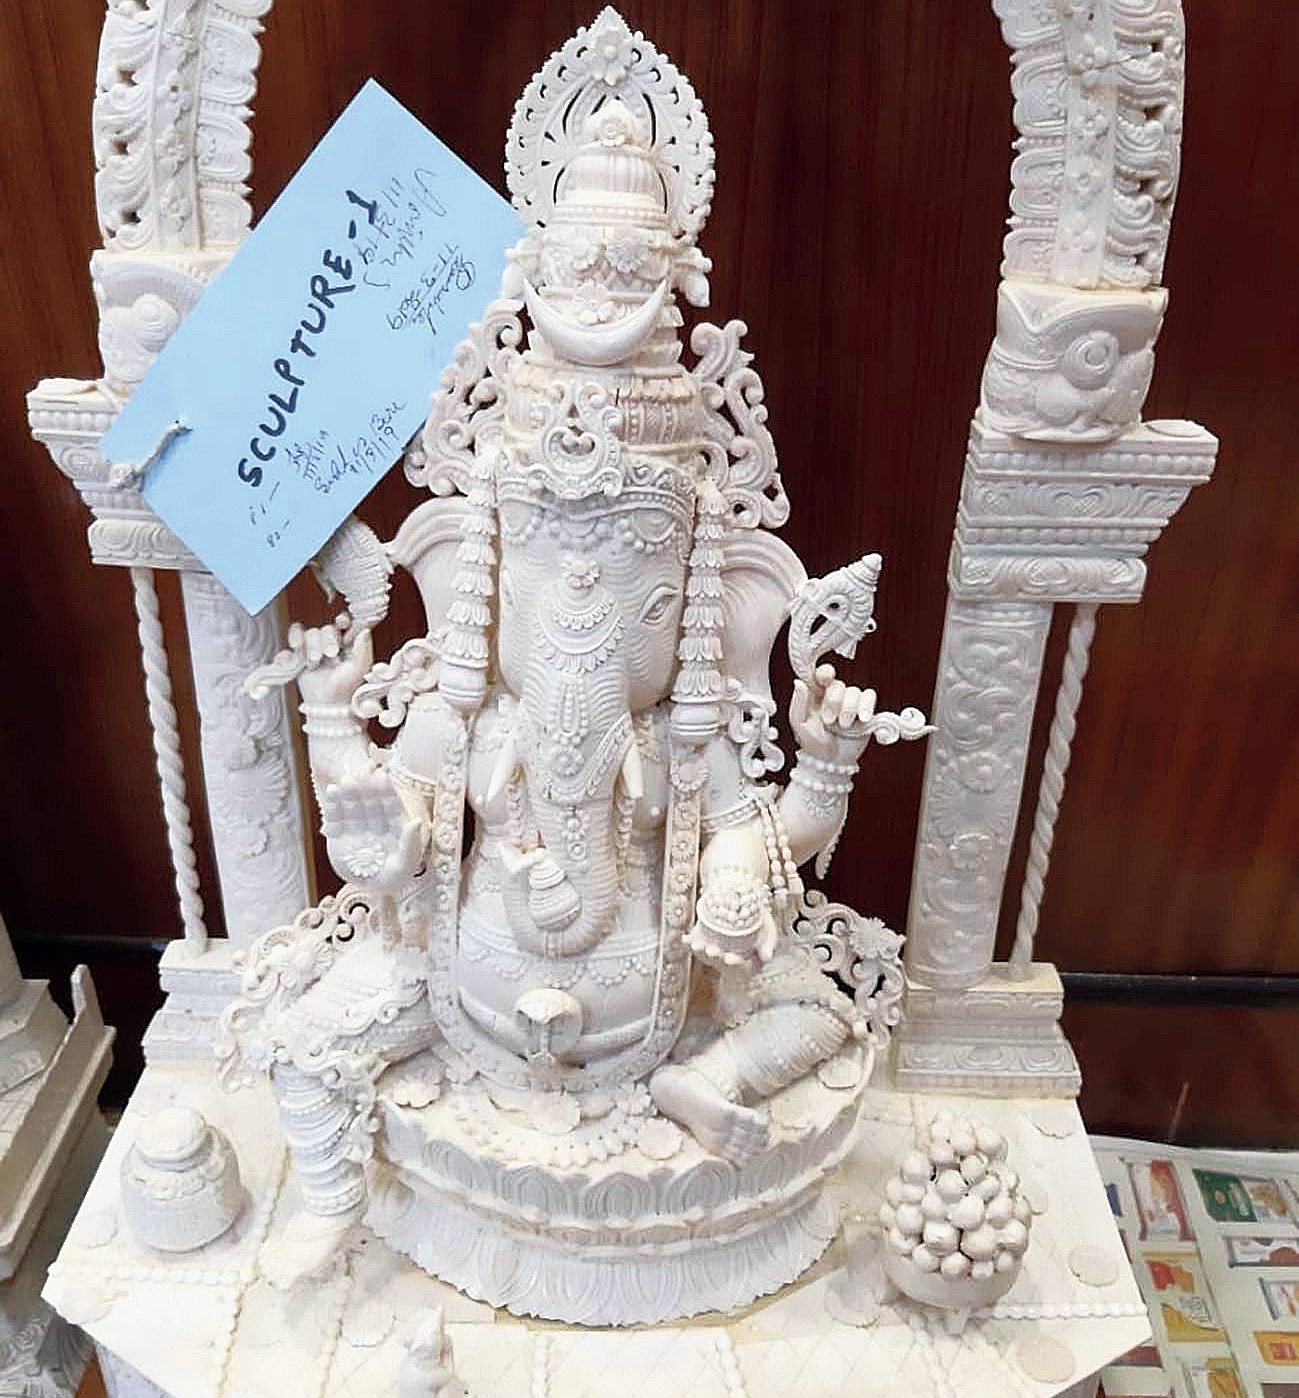 Another ivory statuette seized from the Kasba home of Sudheesh Chandra Babu and Amitha SC Babu on Tuesday.